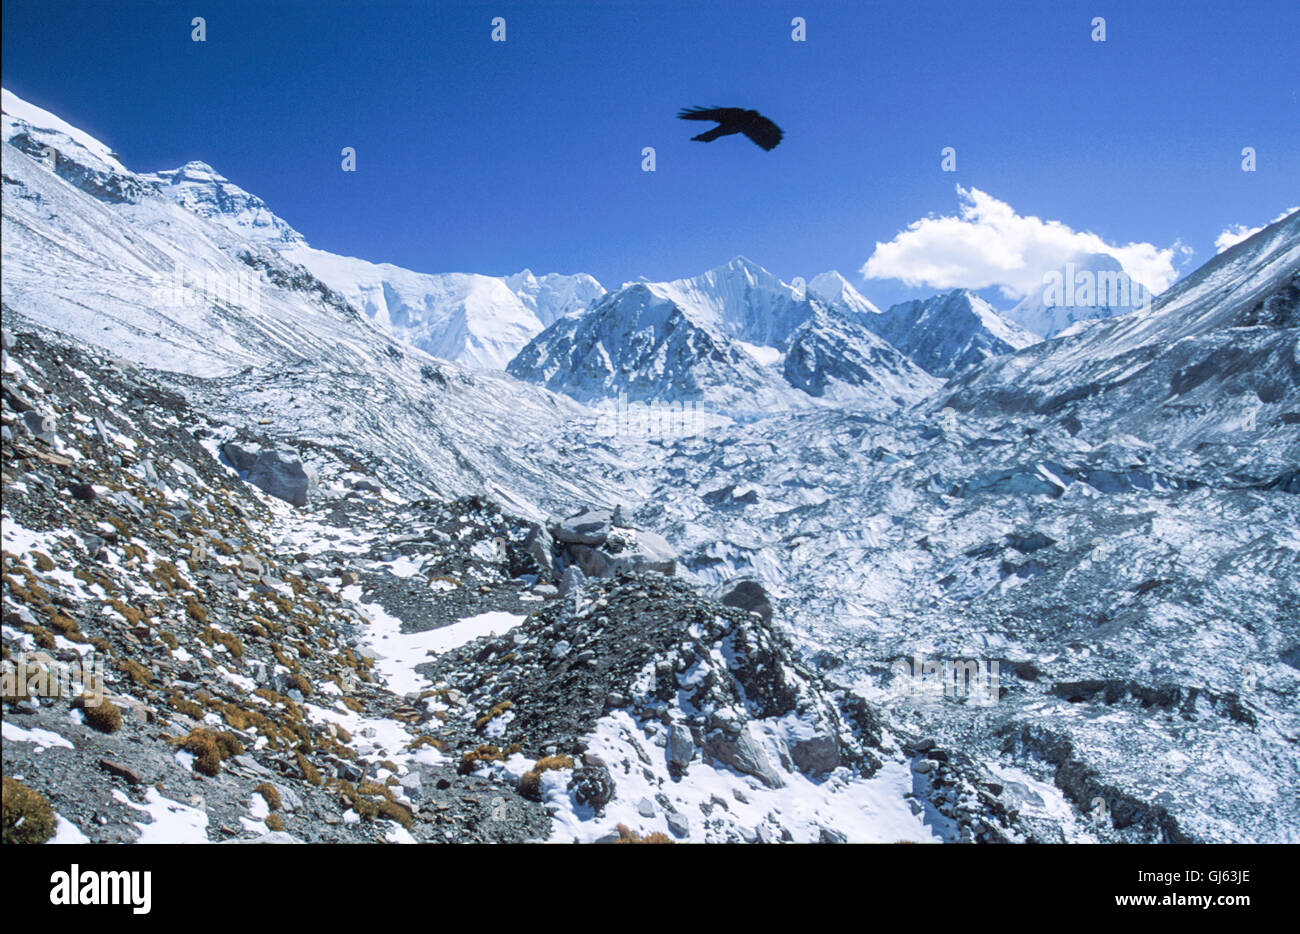 The Rongbuk Glacier with Pumori mountain in the clouds top right and Mount Everest (8,848 metres) top left. - Stock Image